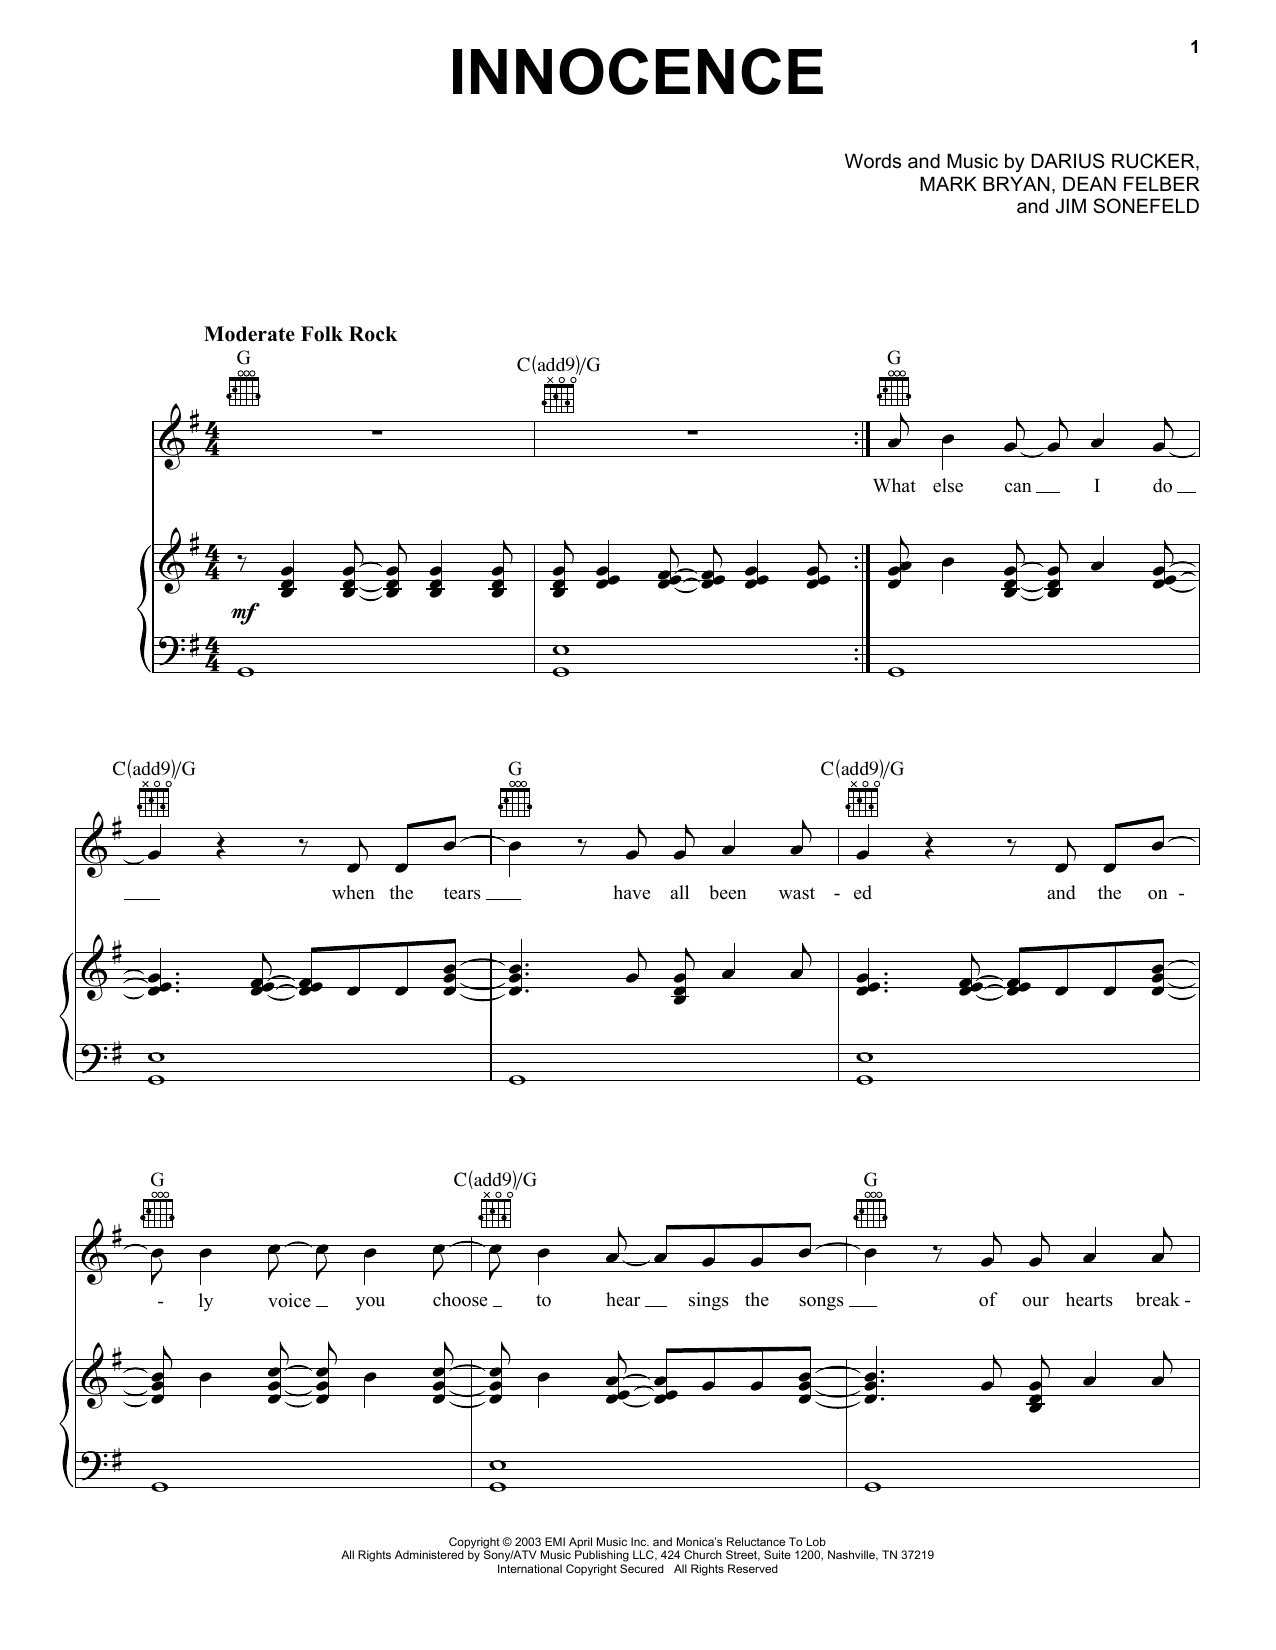 Hootie & The Blowfish Innocence sheet music notes and chords